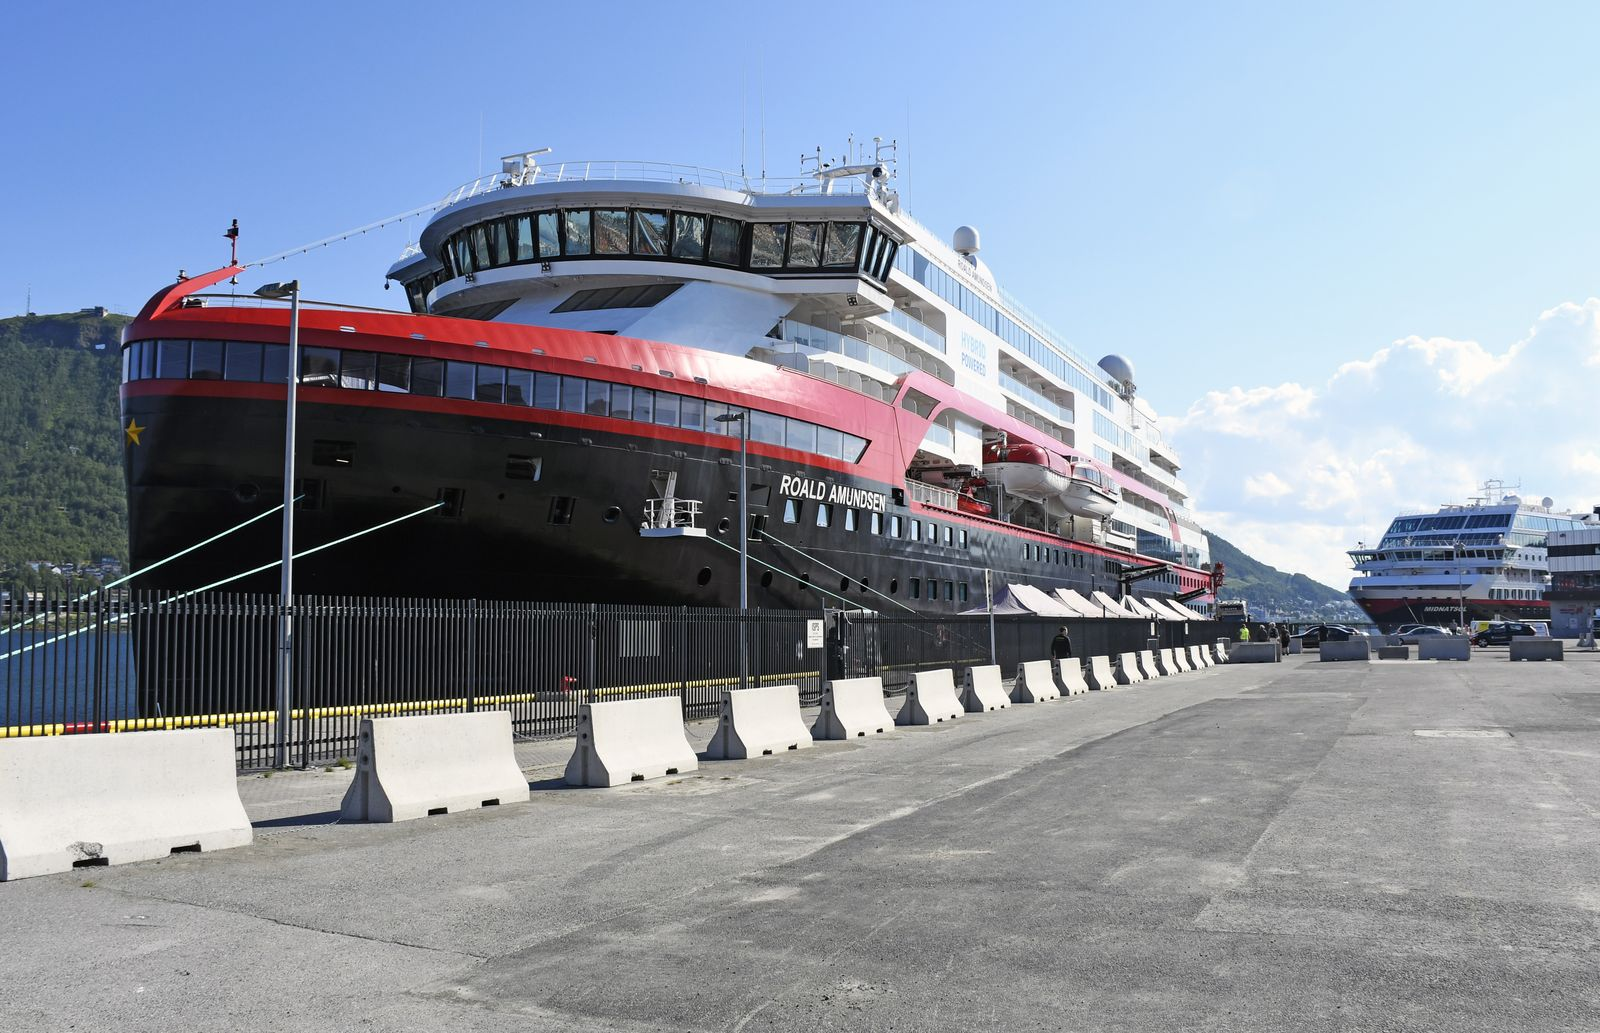 Covid-19 on the Hurtigruten ship Roald Amundsen, Tromso, Norway - 31 Jul 2020